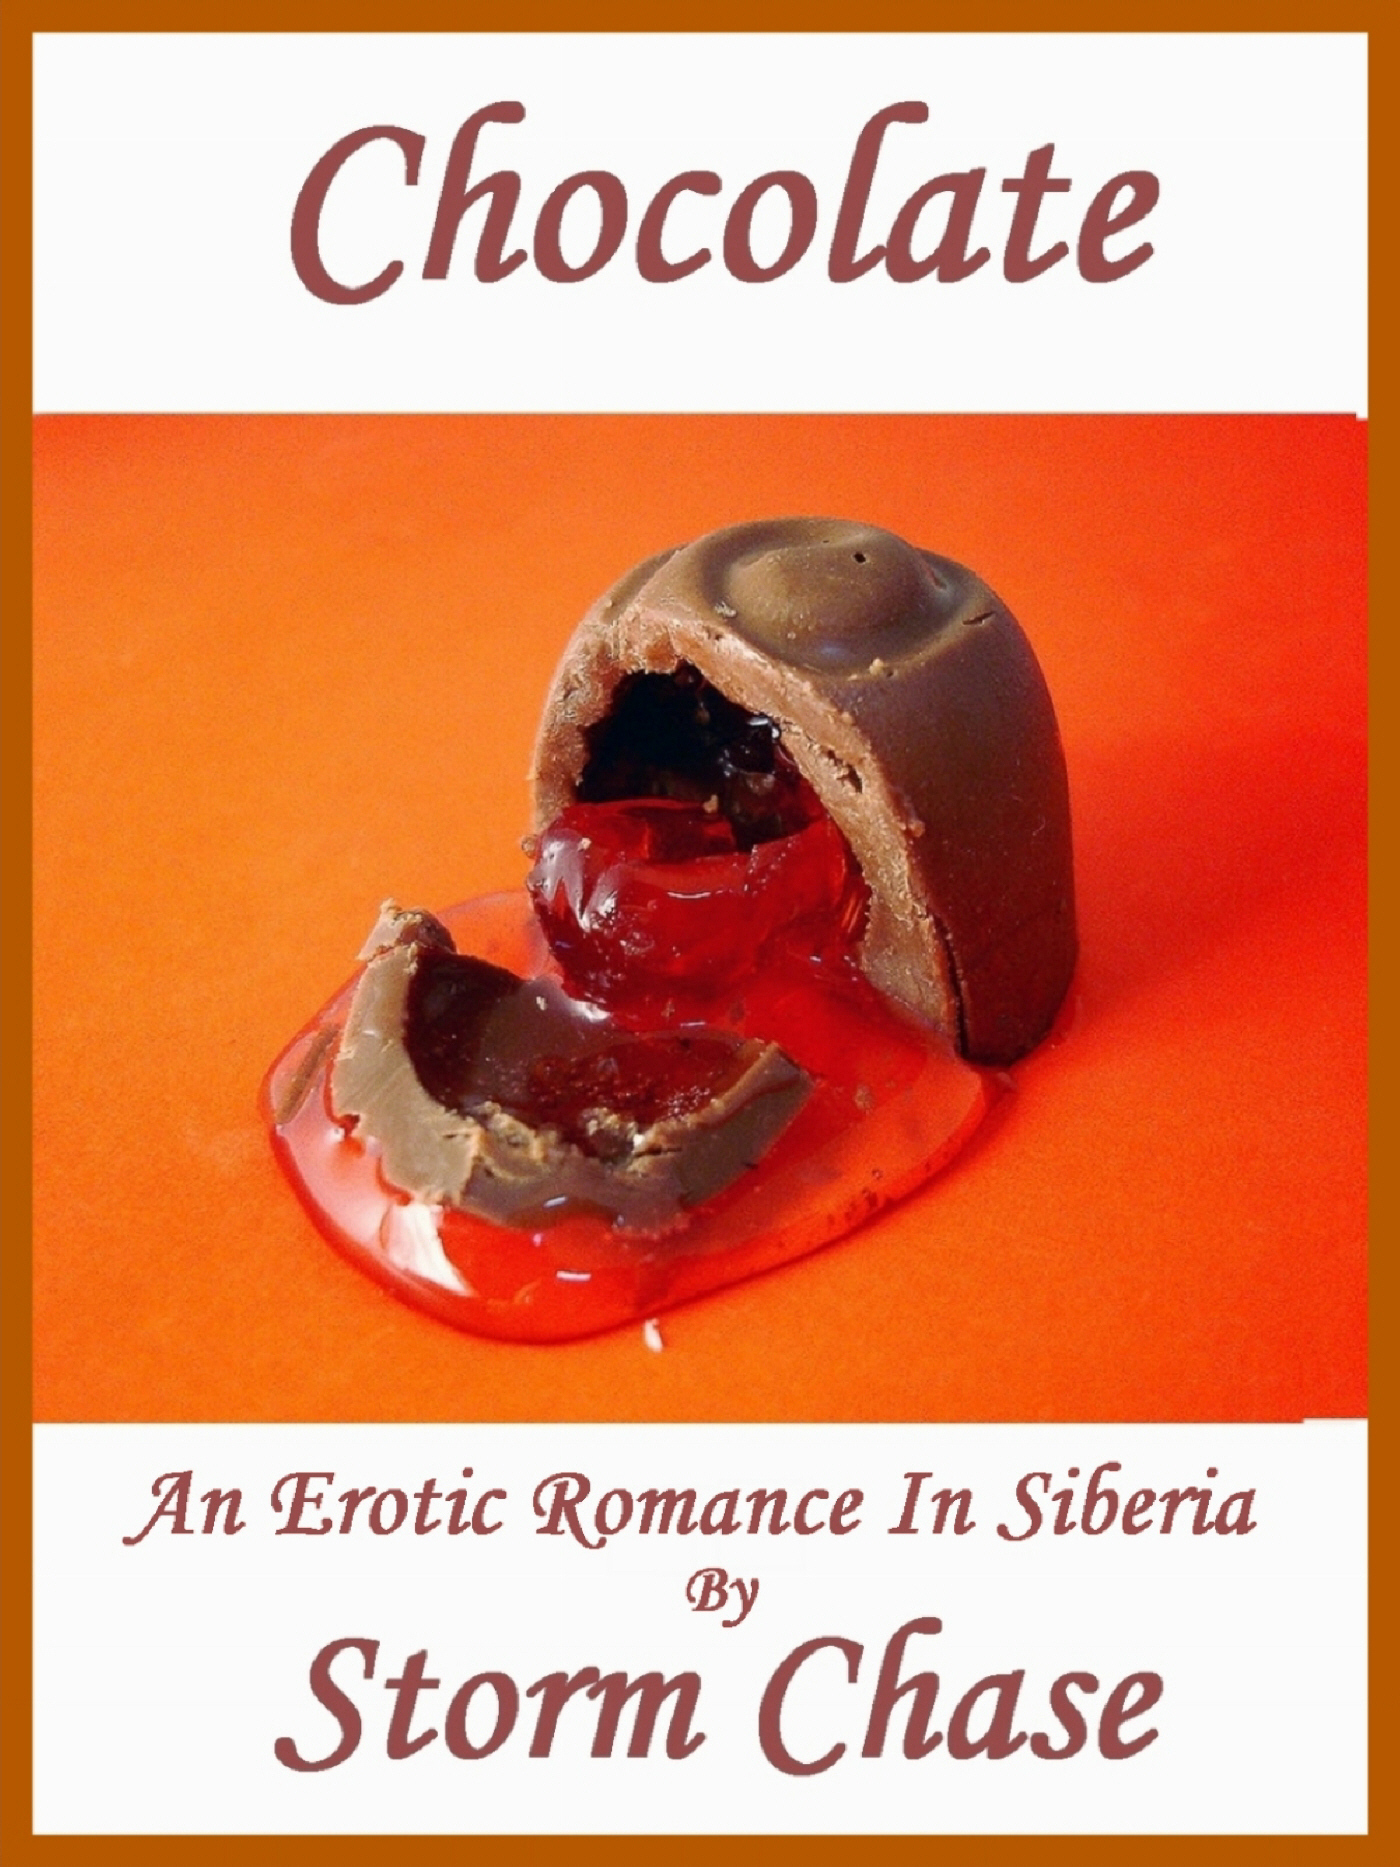 Chocolate: An Erotic Romance In Siberia